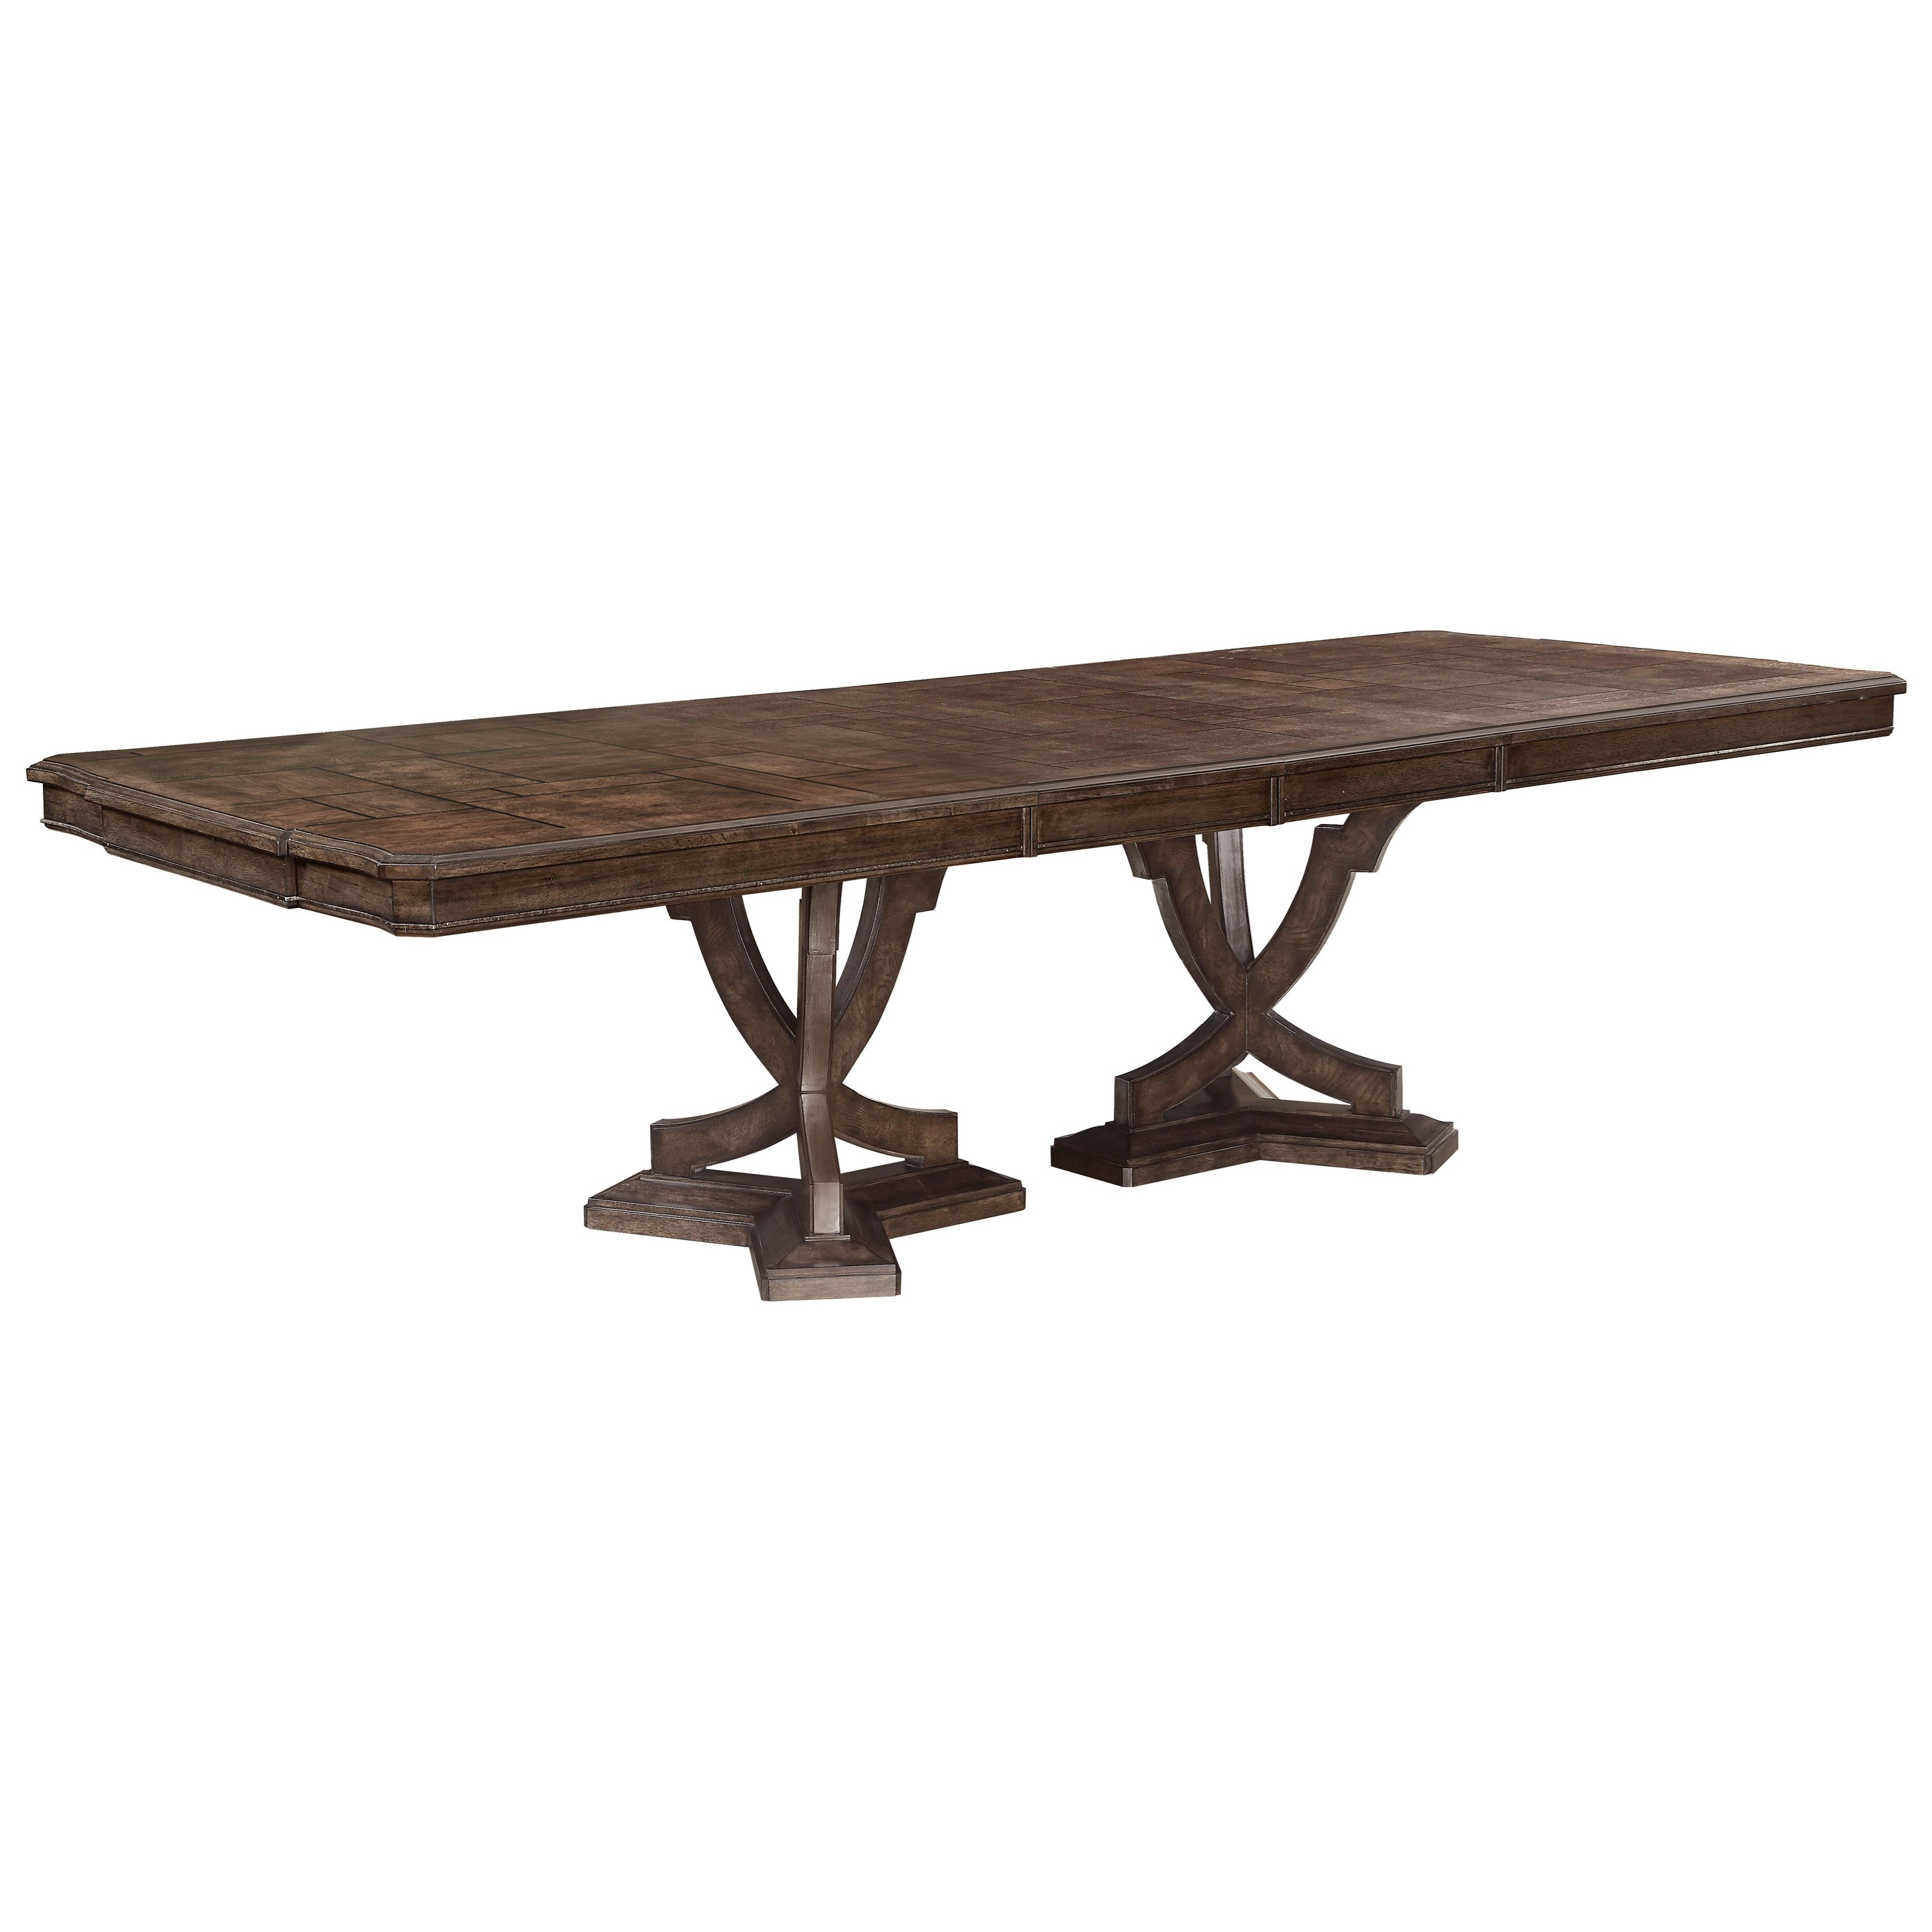 Landmark Double Pedestal Dining Table by A.R.T. Furniture Inc at Michael Alan Furniture & Design